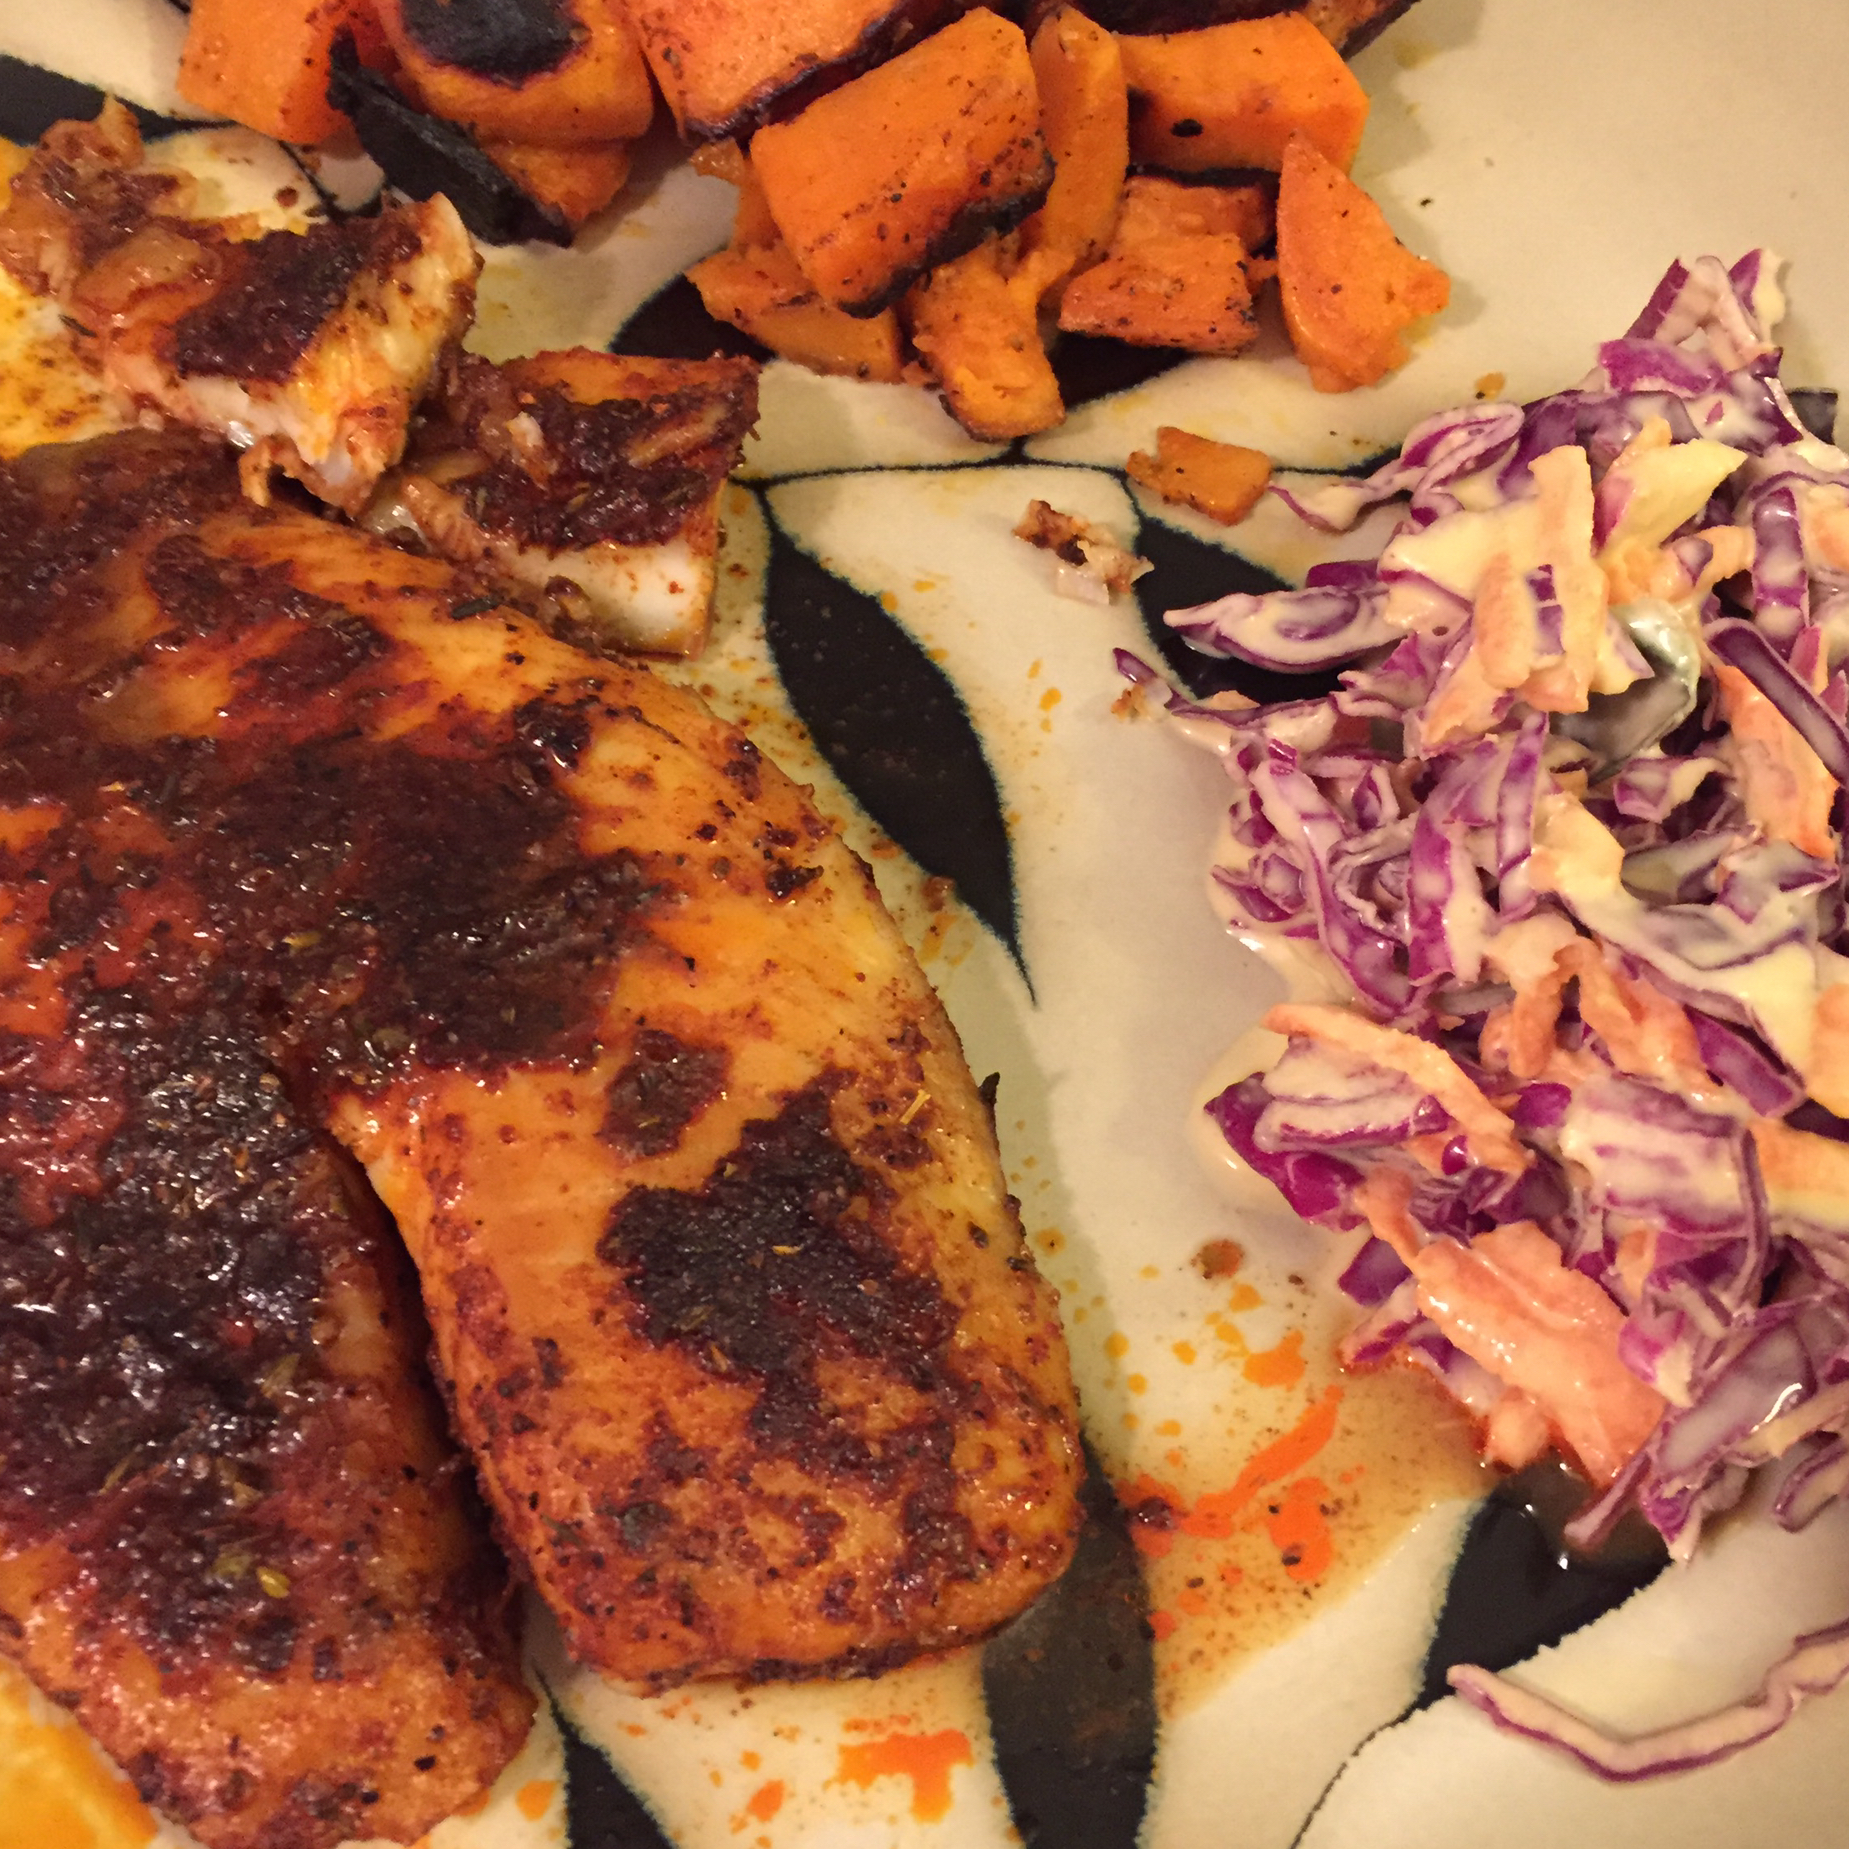 Blackened Tilapia with Secret Hobo Spices